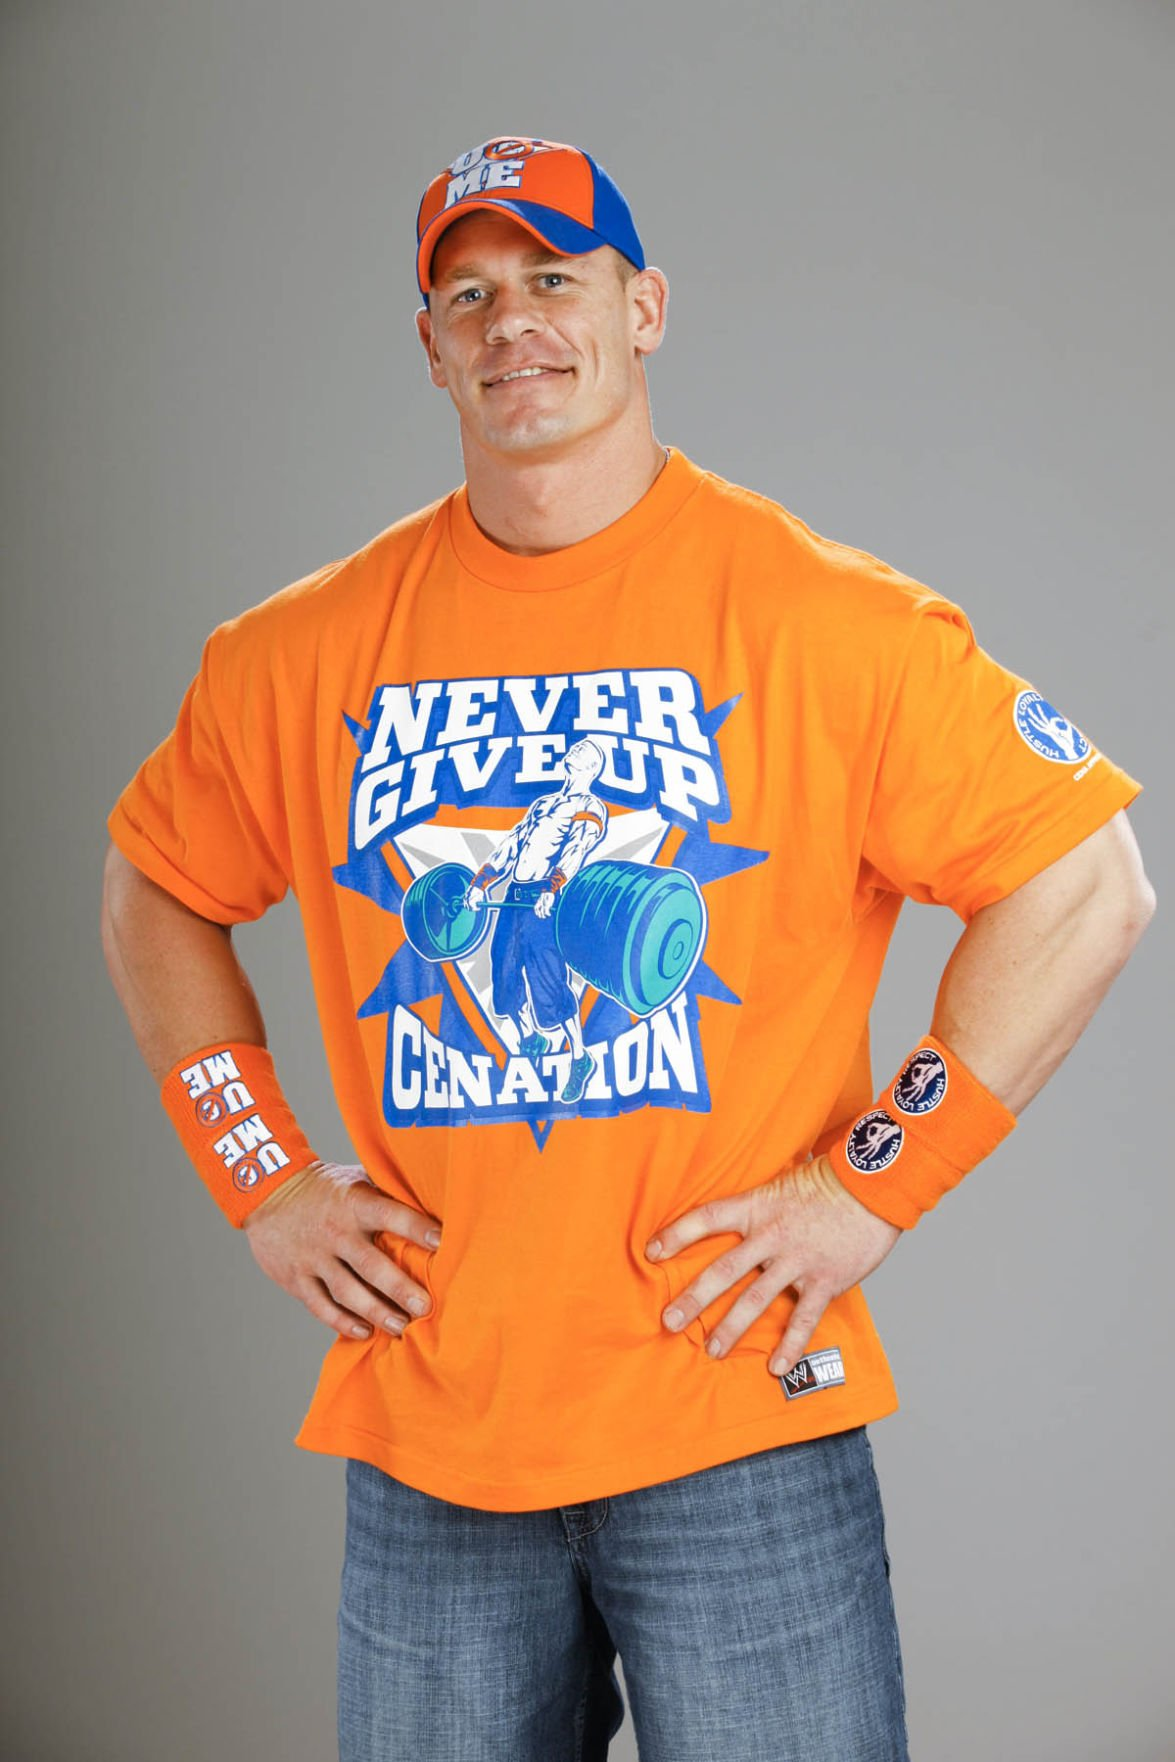 No surprise Cena staying with Raw